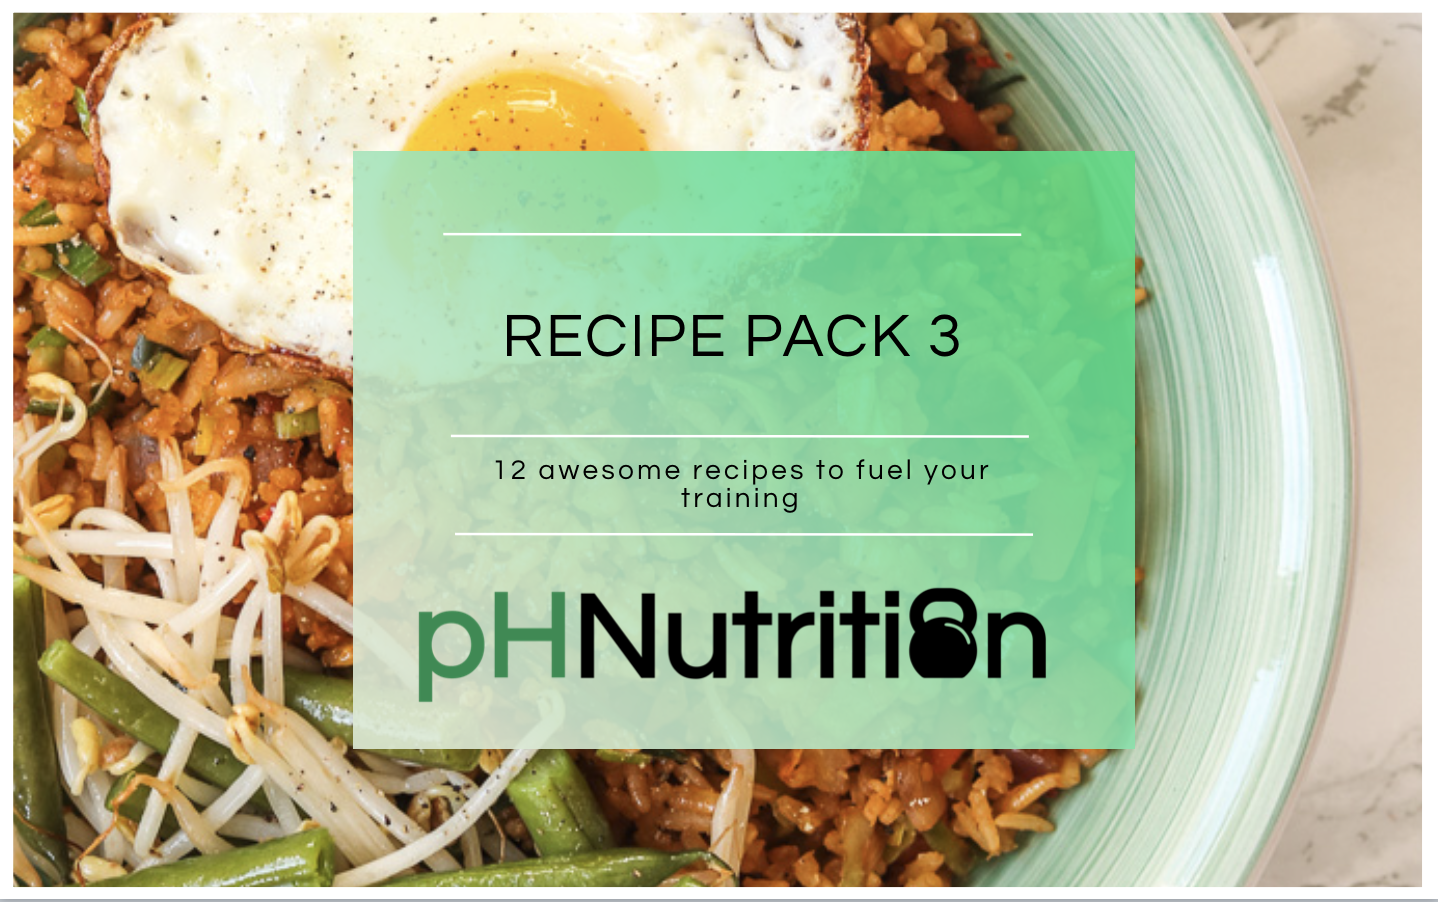 MONTH 3 - 12 awesome recipes and a special bonus food storage chart - GET THAT HEREA few highlights include the veggie nasi goreng, miso salmon with zucchini noodles and a vegan creme brûlée.